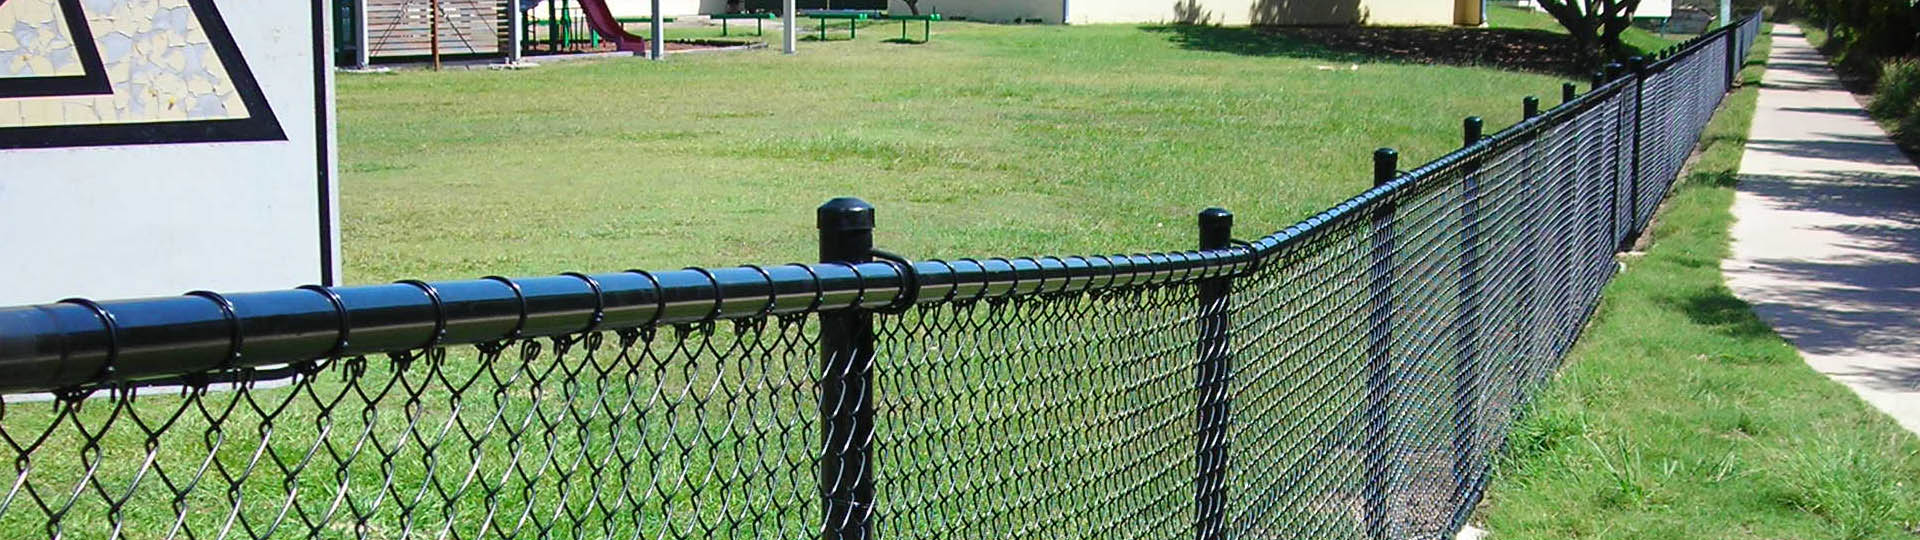 How to choose a suitable fence